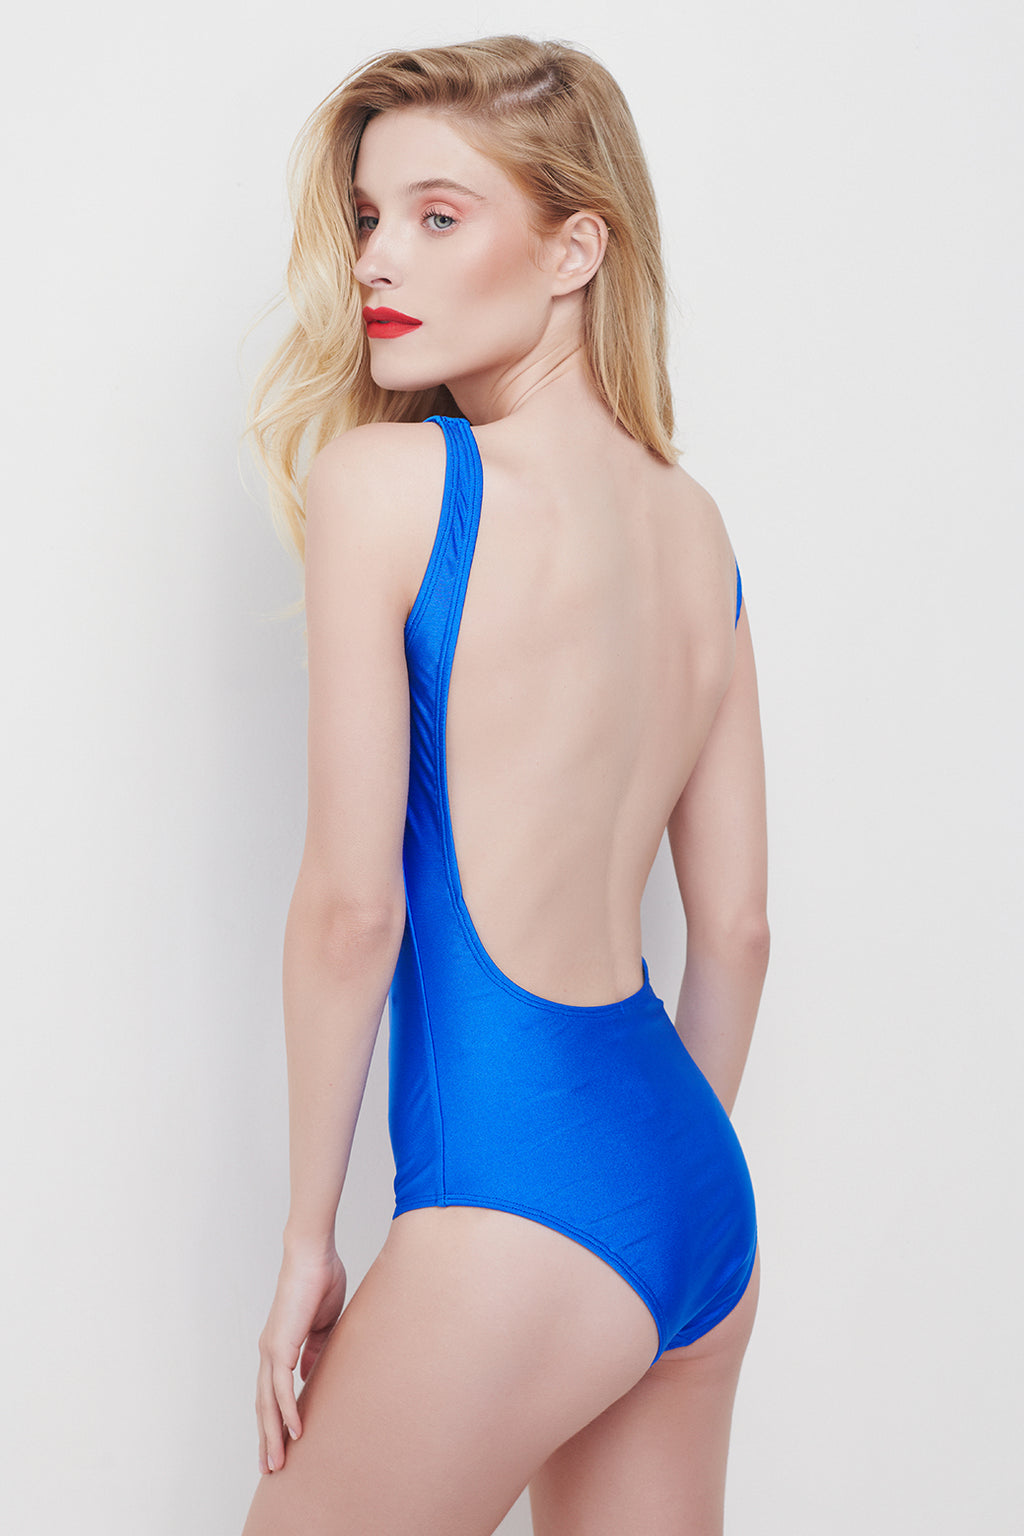 OPEN BACK SWIMSUIT - SHINY BLUE